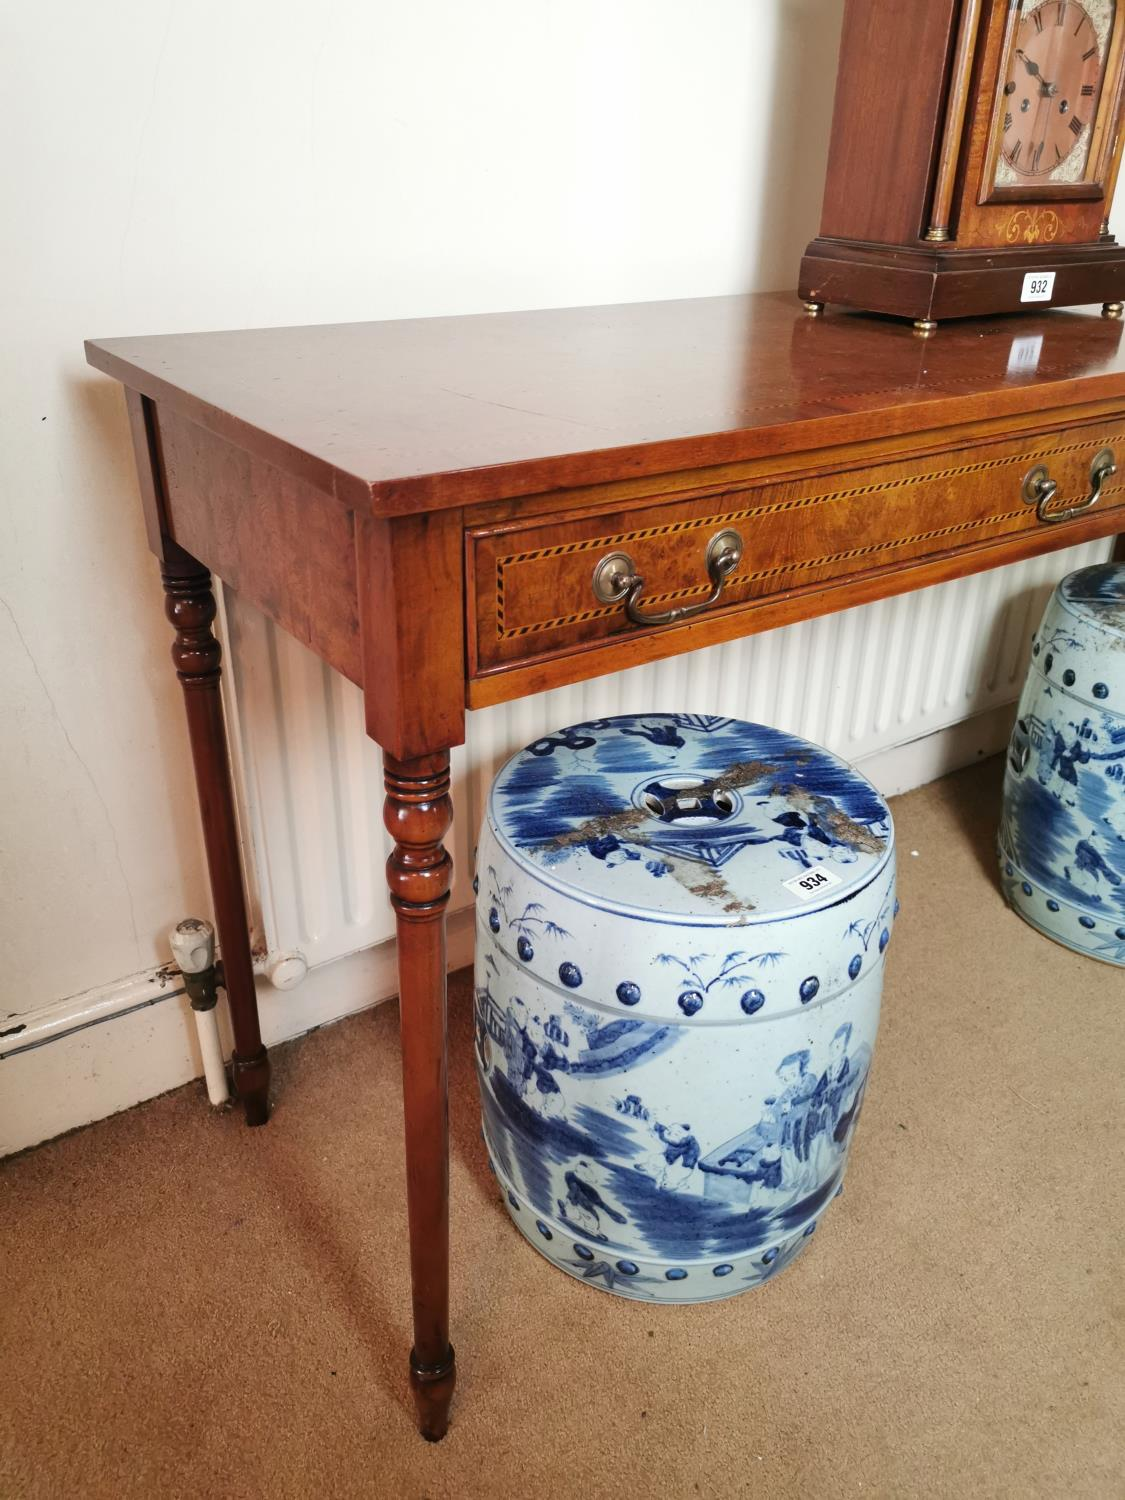 Burr walnut and inlaid satinwood side table. - Image 2 of 3